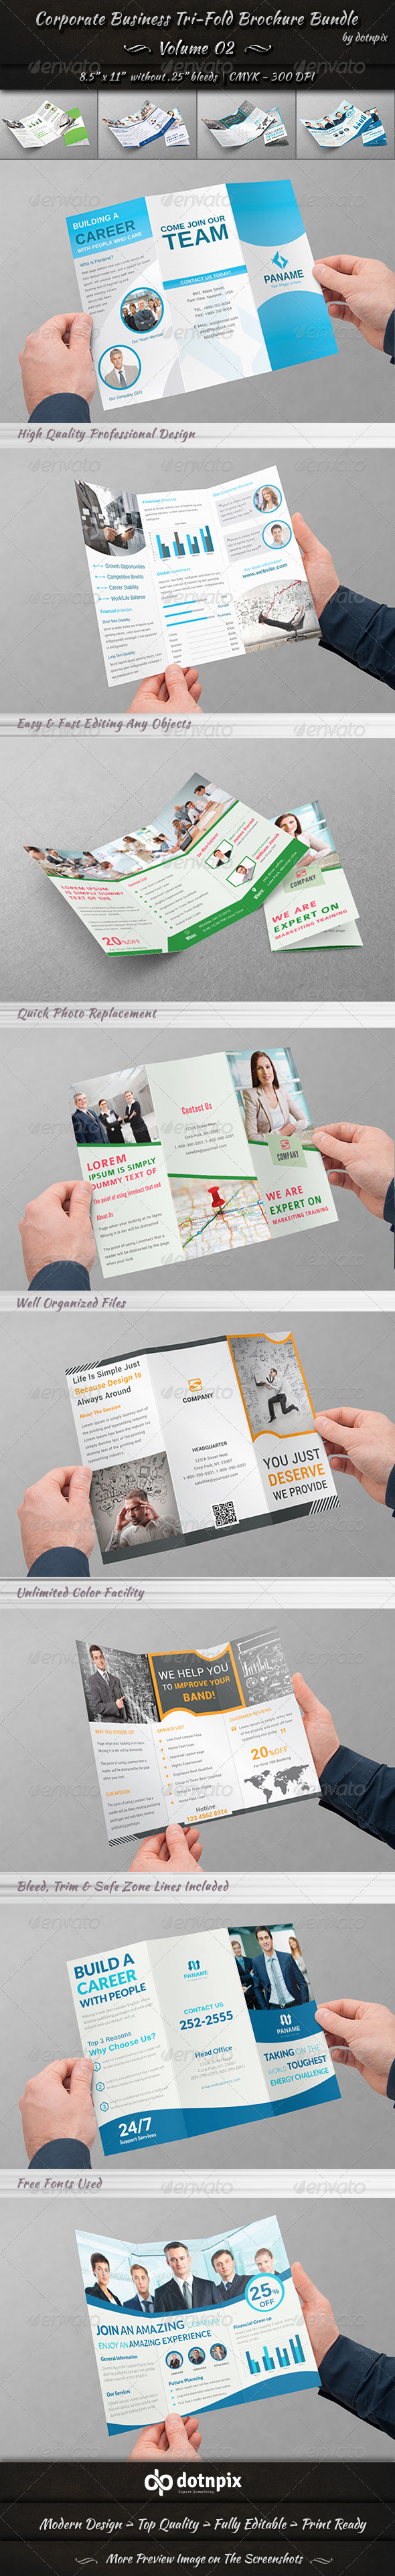 GraphicRiver Corporate Business Tri-Fold Brochure Bundle v2 8230324